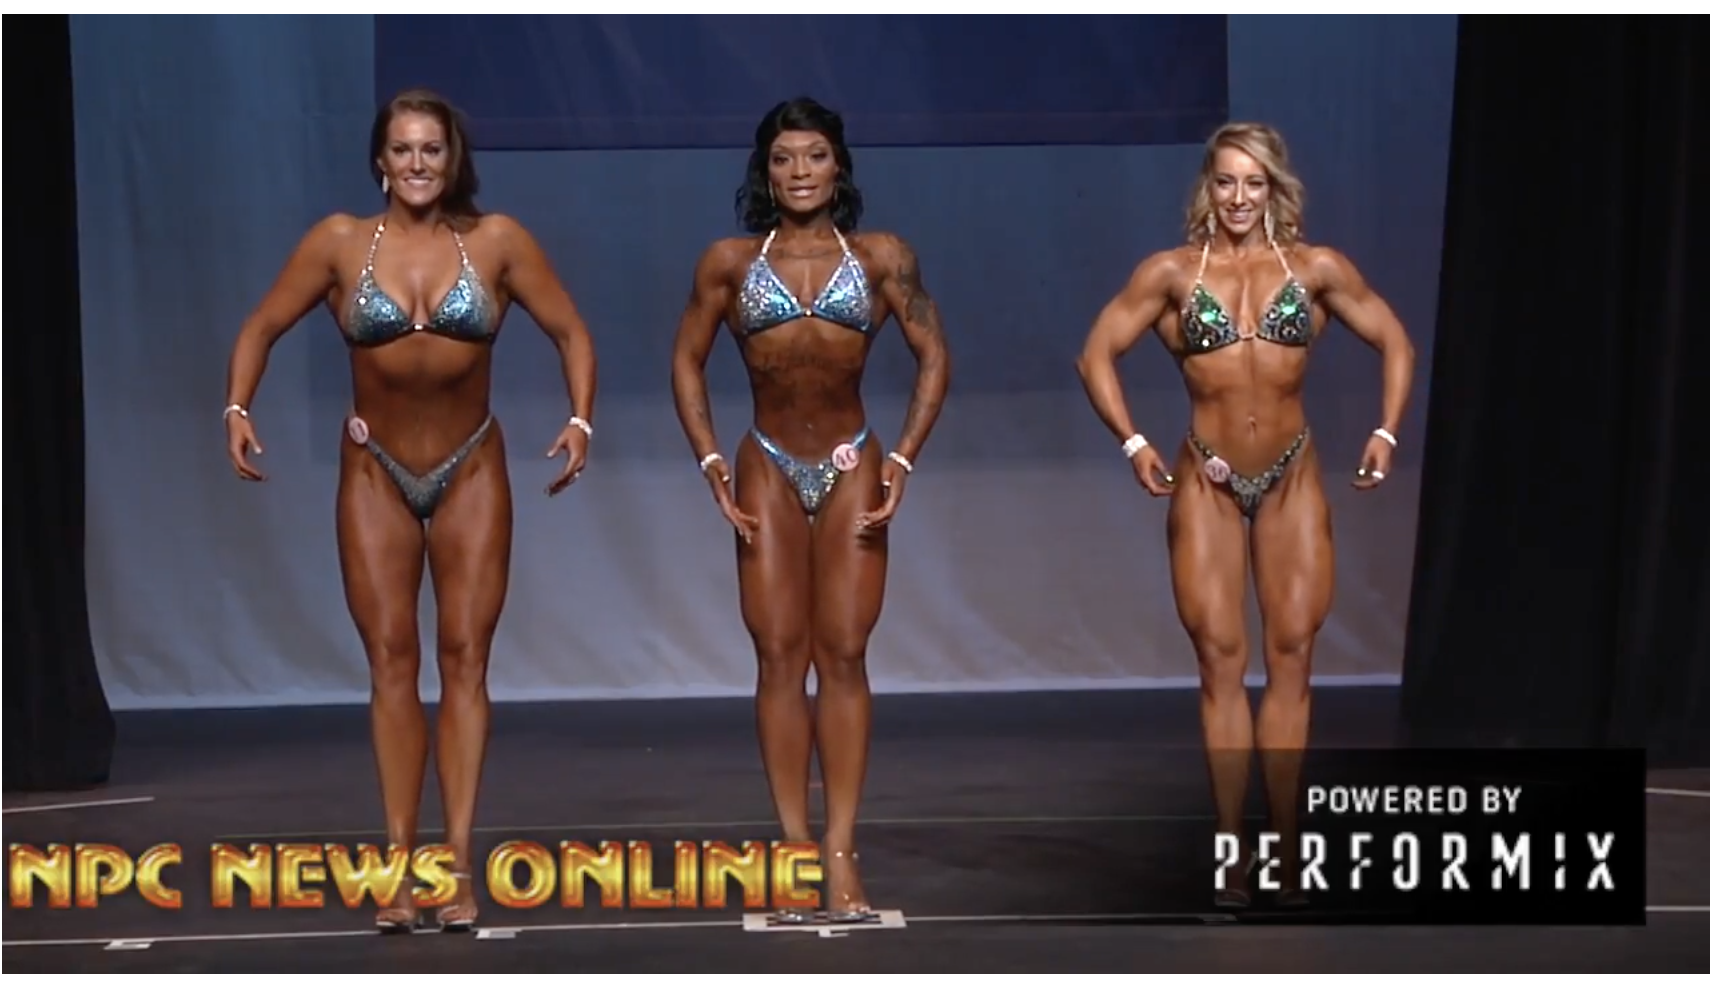 2018 NPC JUDGEMENT DAY WOMEN'S FIGURE OVERALL